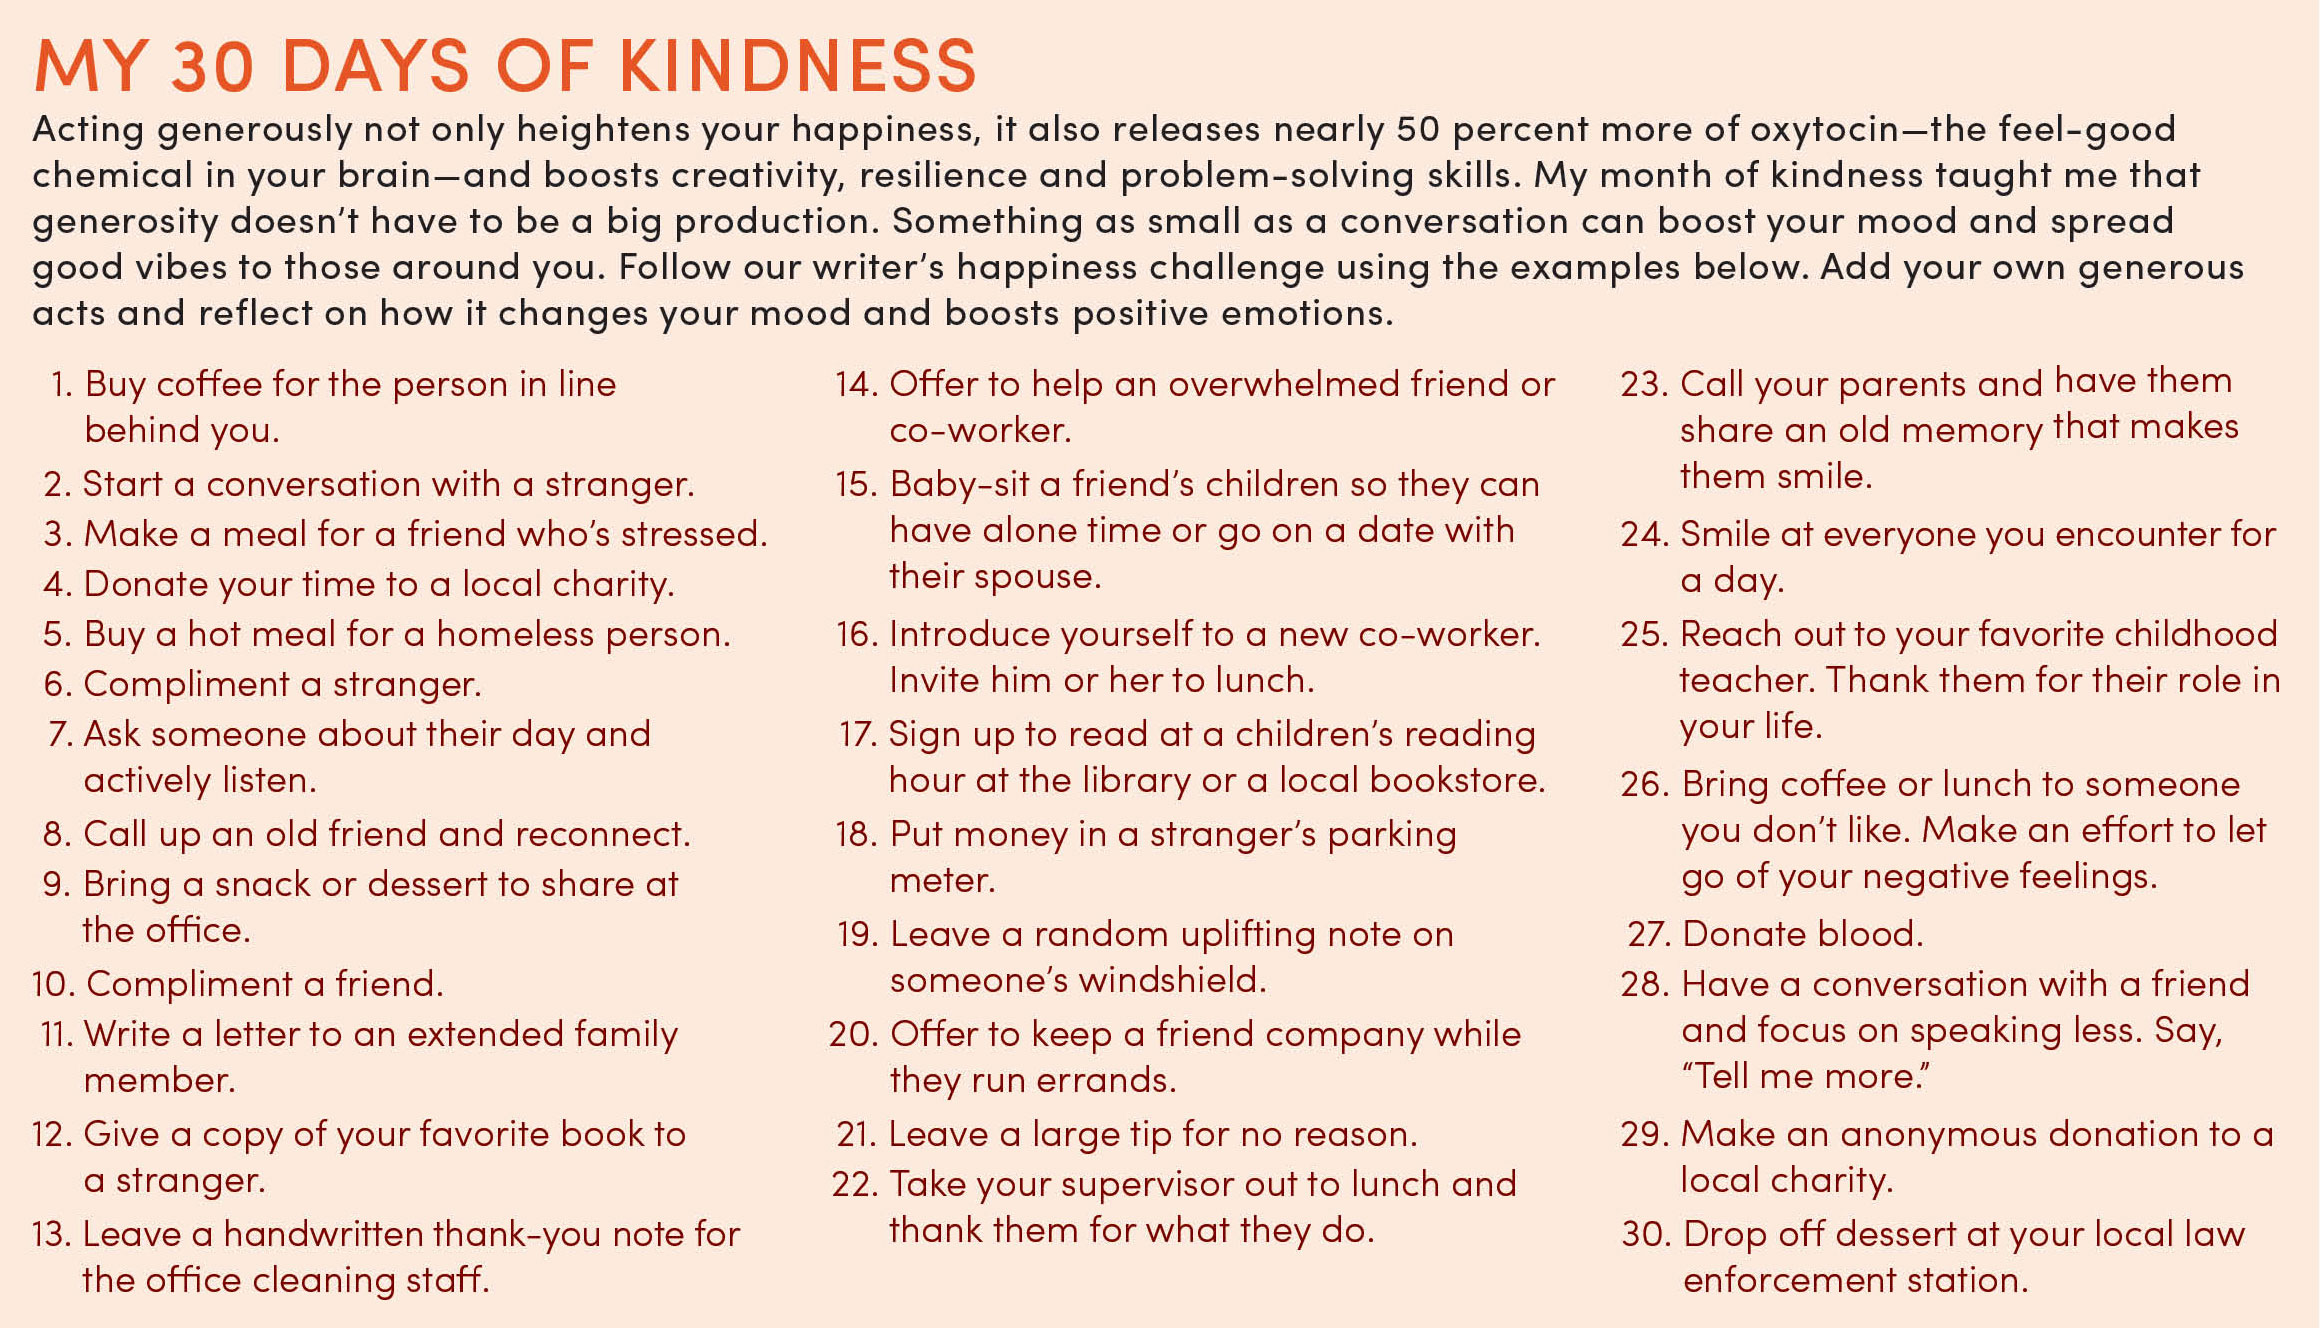 How 30 Days of Kindness Made Me a Better Person